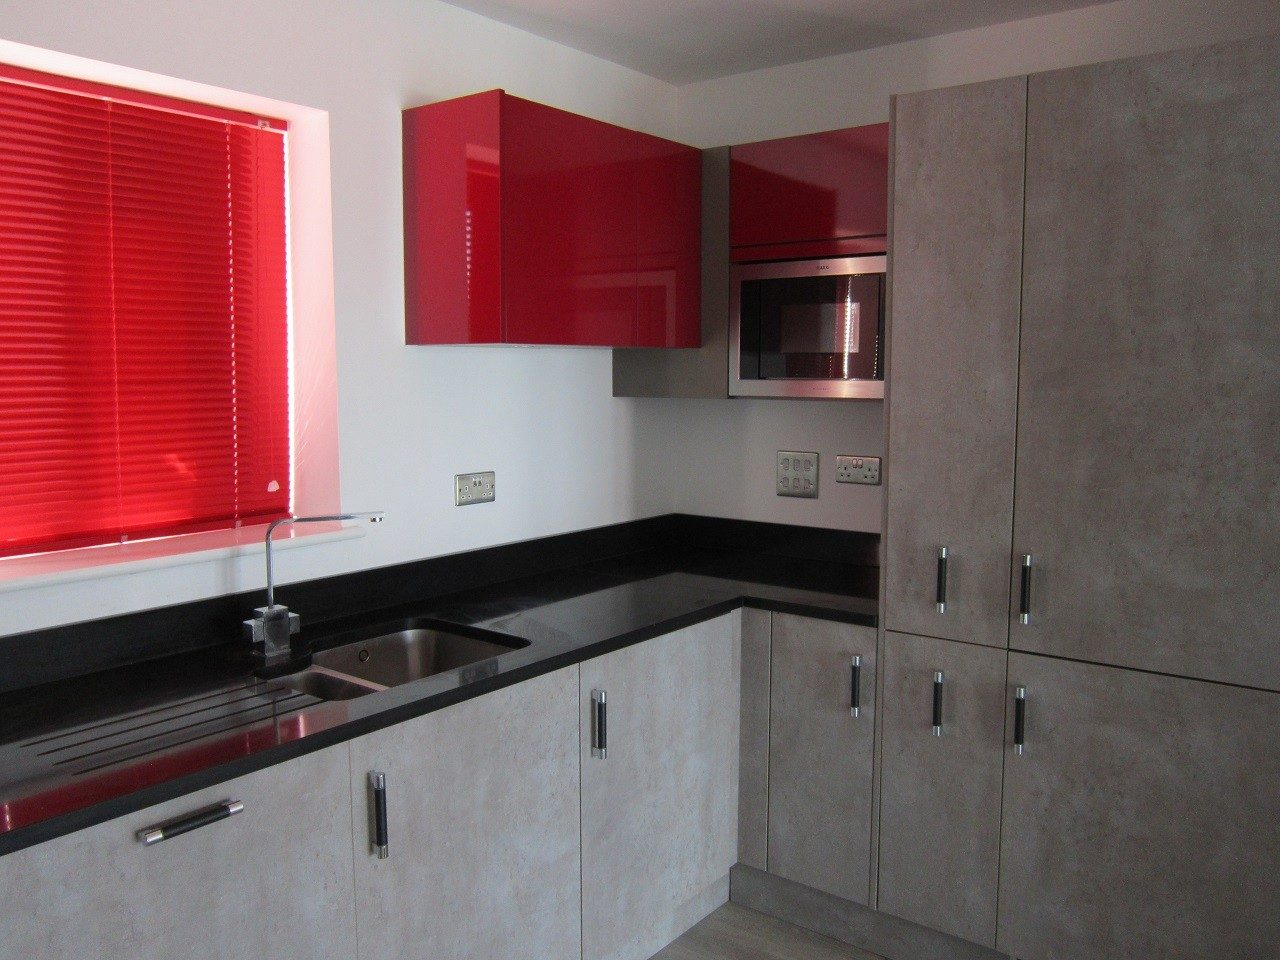 Luxury 2 Bed 2 Bath Apartment - The Online Letting Agents Ltd